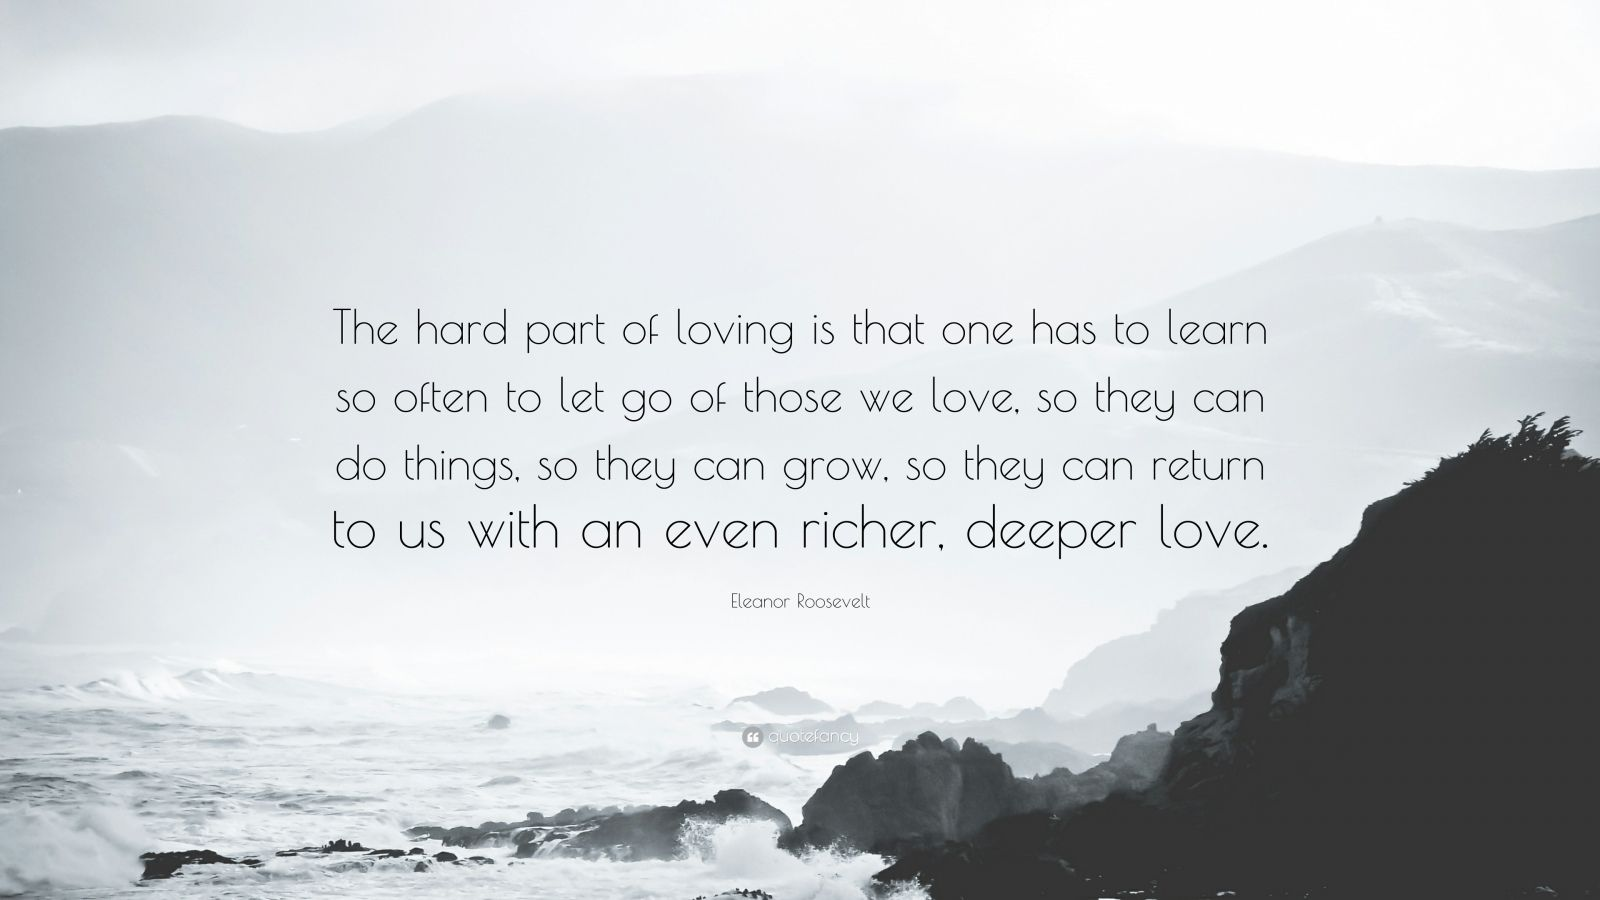 """Eleanor Roosevelt Quote: """"The hard part of loving is that one has to learn so often to let go of those we love, so they can do things, so they can grow, so they can return to us with an even richer, deeper love."""""""